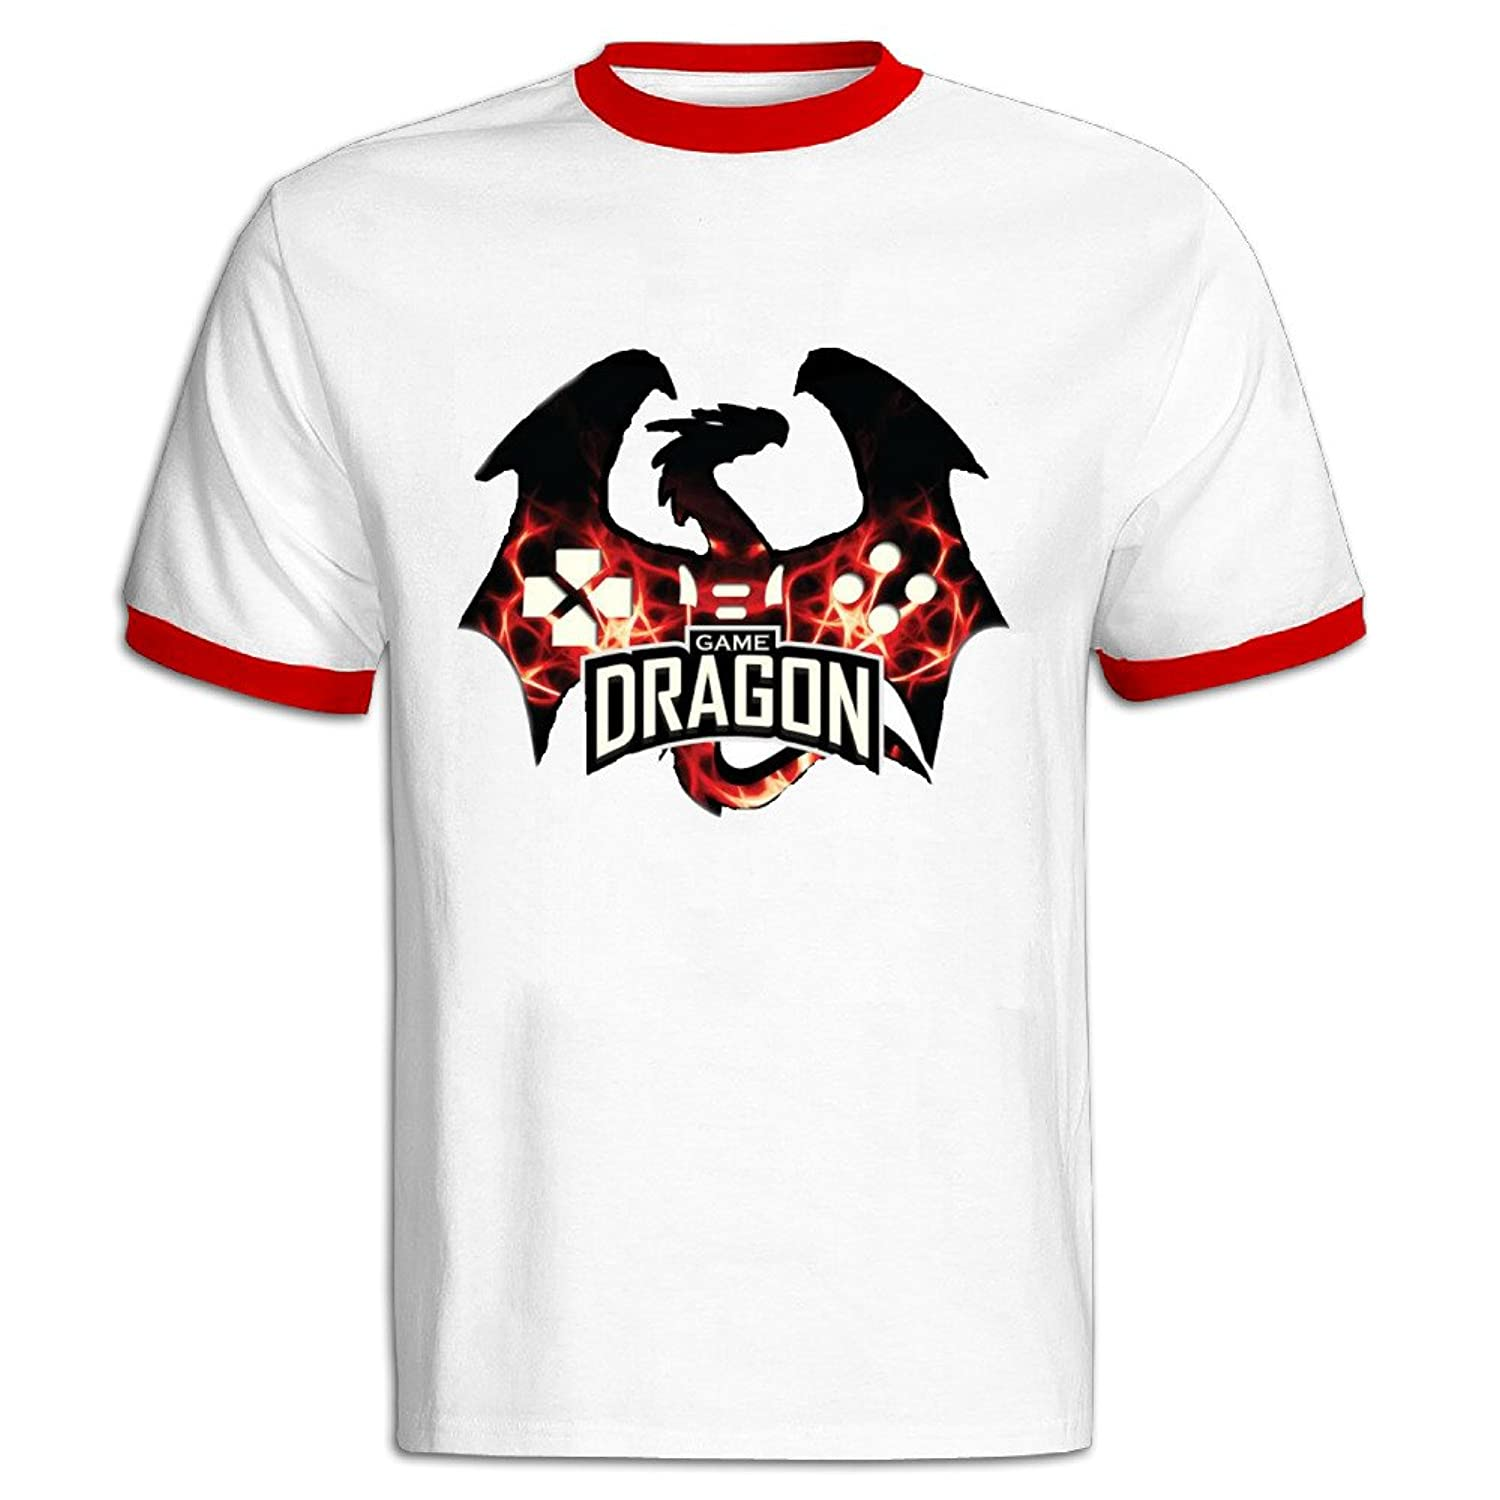 Men's Red Pre-cotton The Last Of Us Remastered Game Dragon Tee-shirt US Size